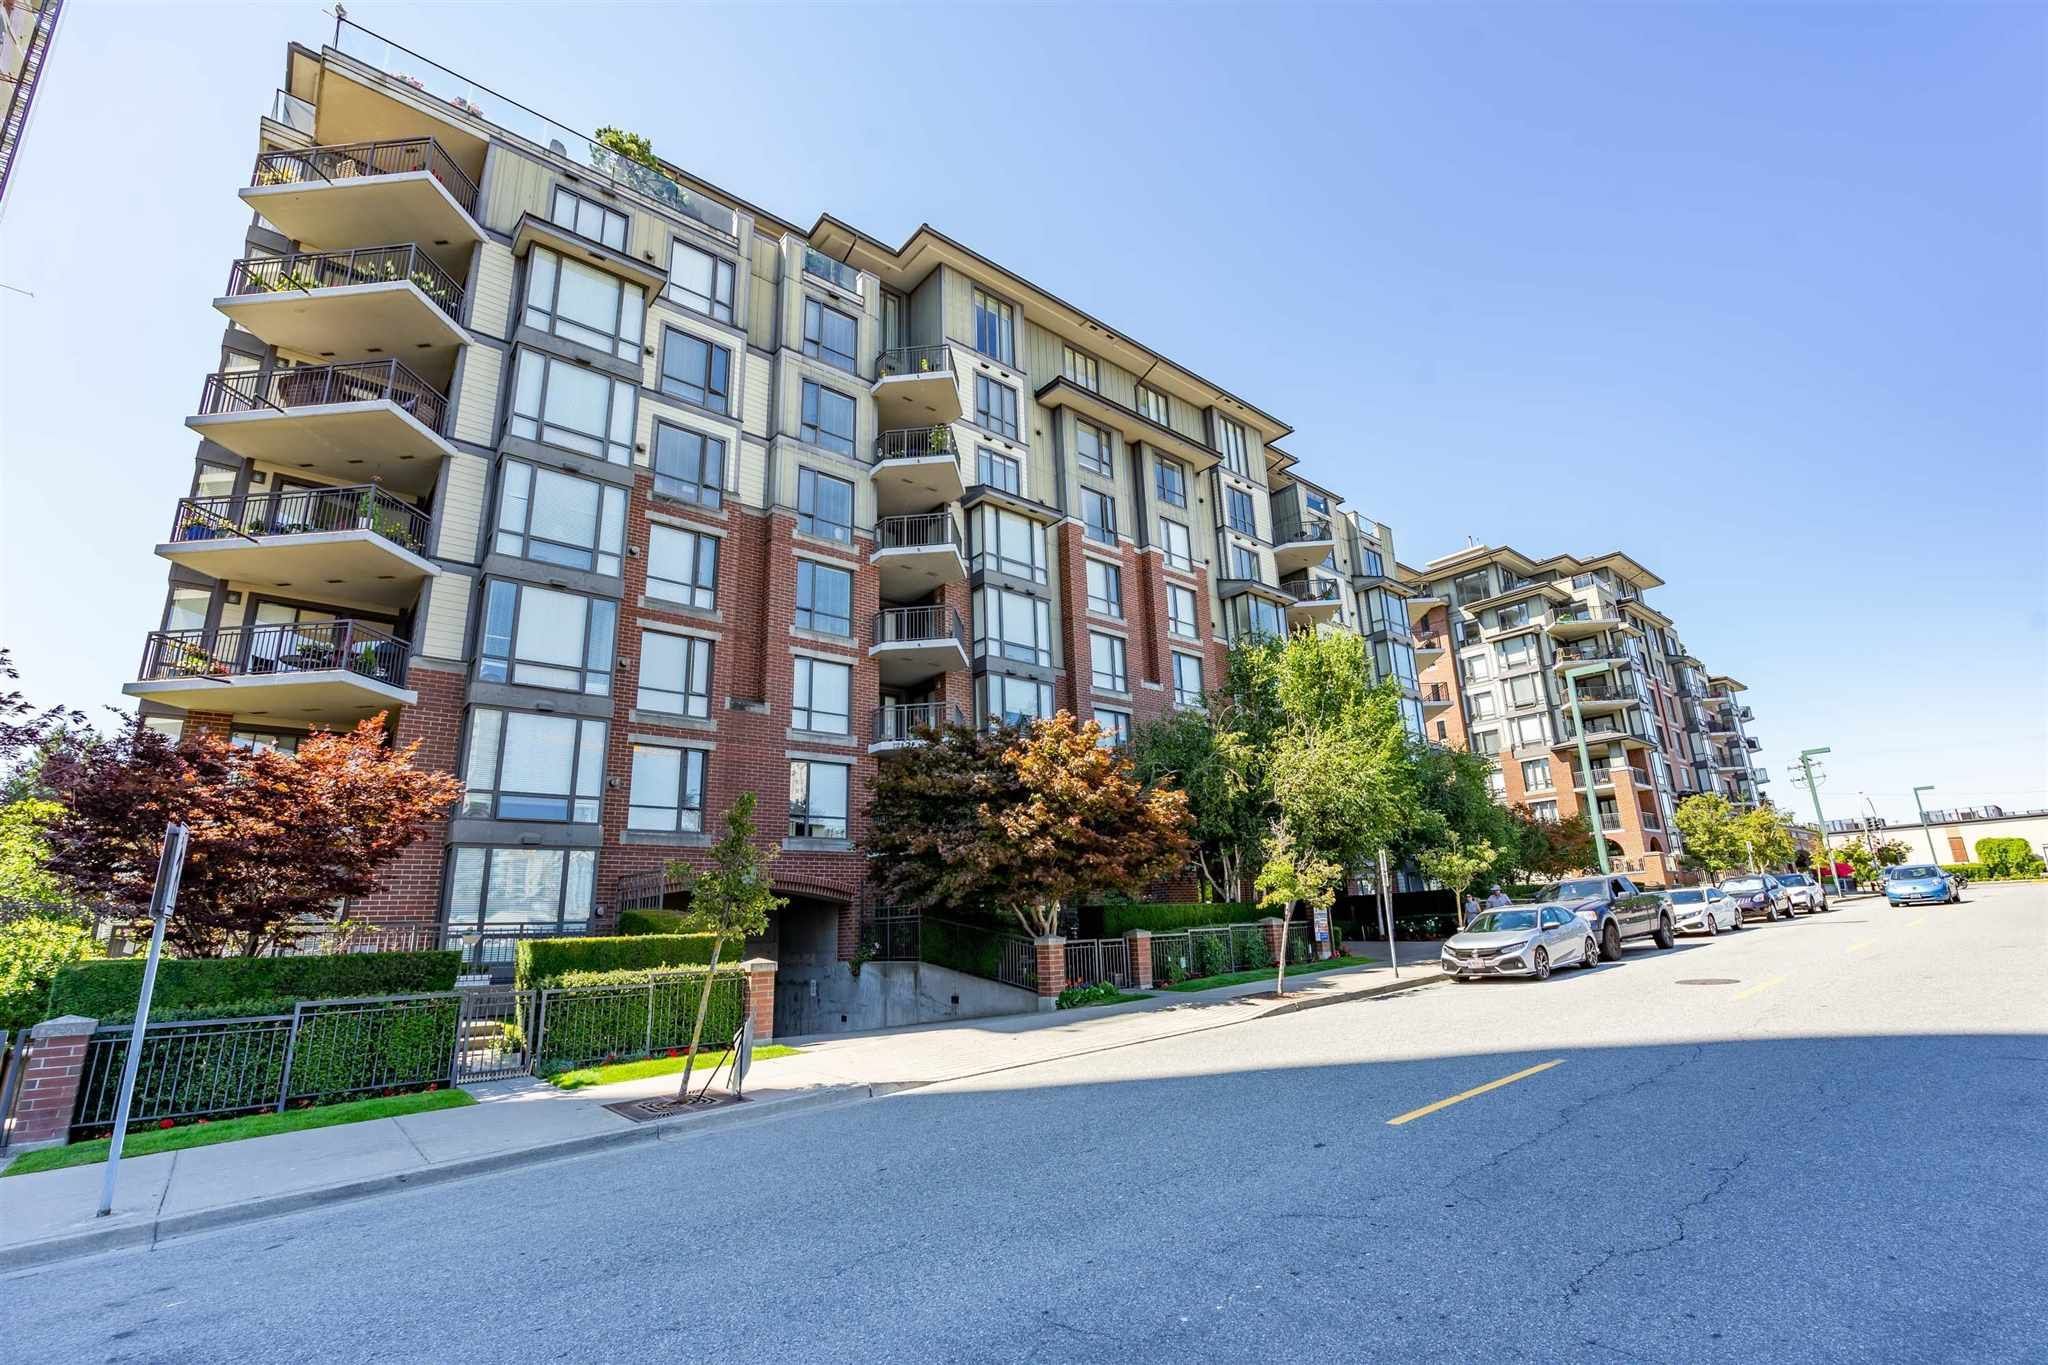 """Main Photo: 106 1551 FOSTER Street: White Rock Condo for sale in """"SUSSEX HOUSE"""" (South Surrey White Rock)  : MLS®# R2602662"""